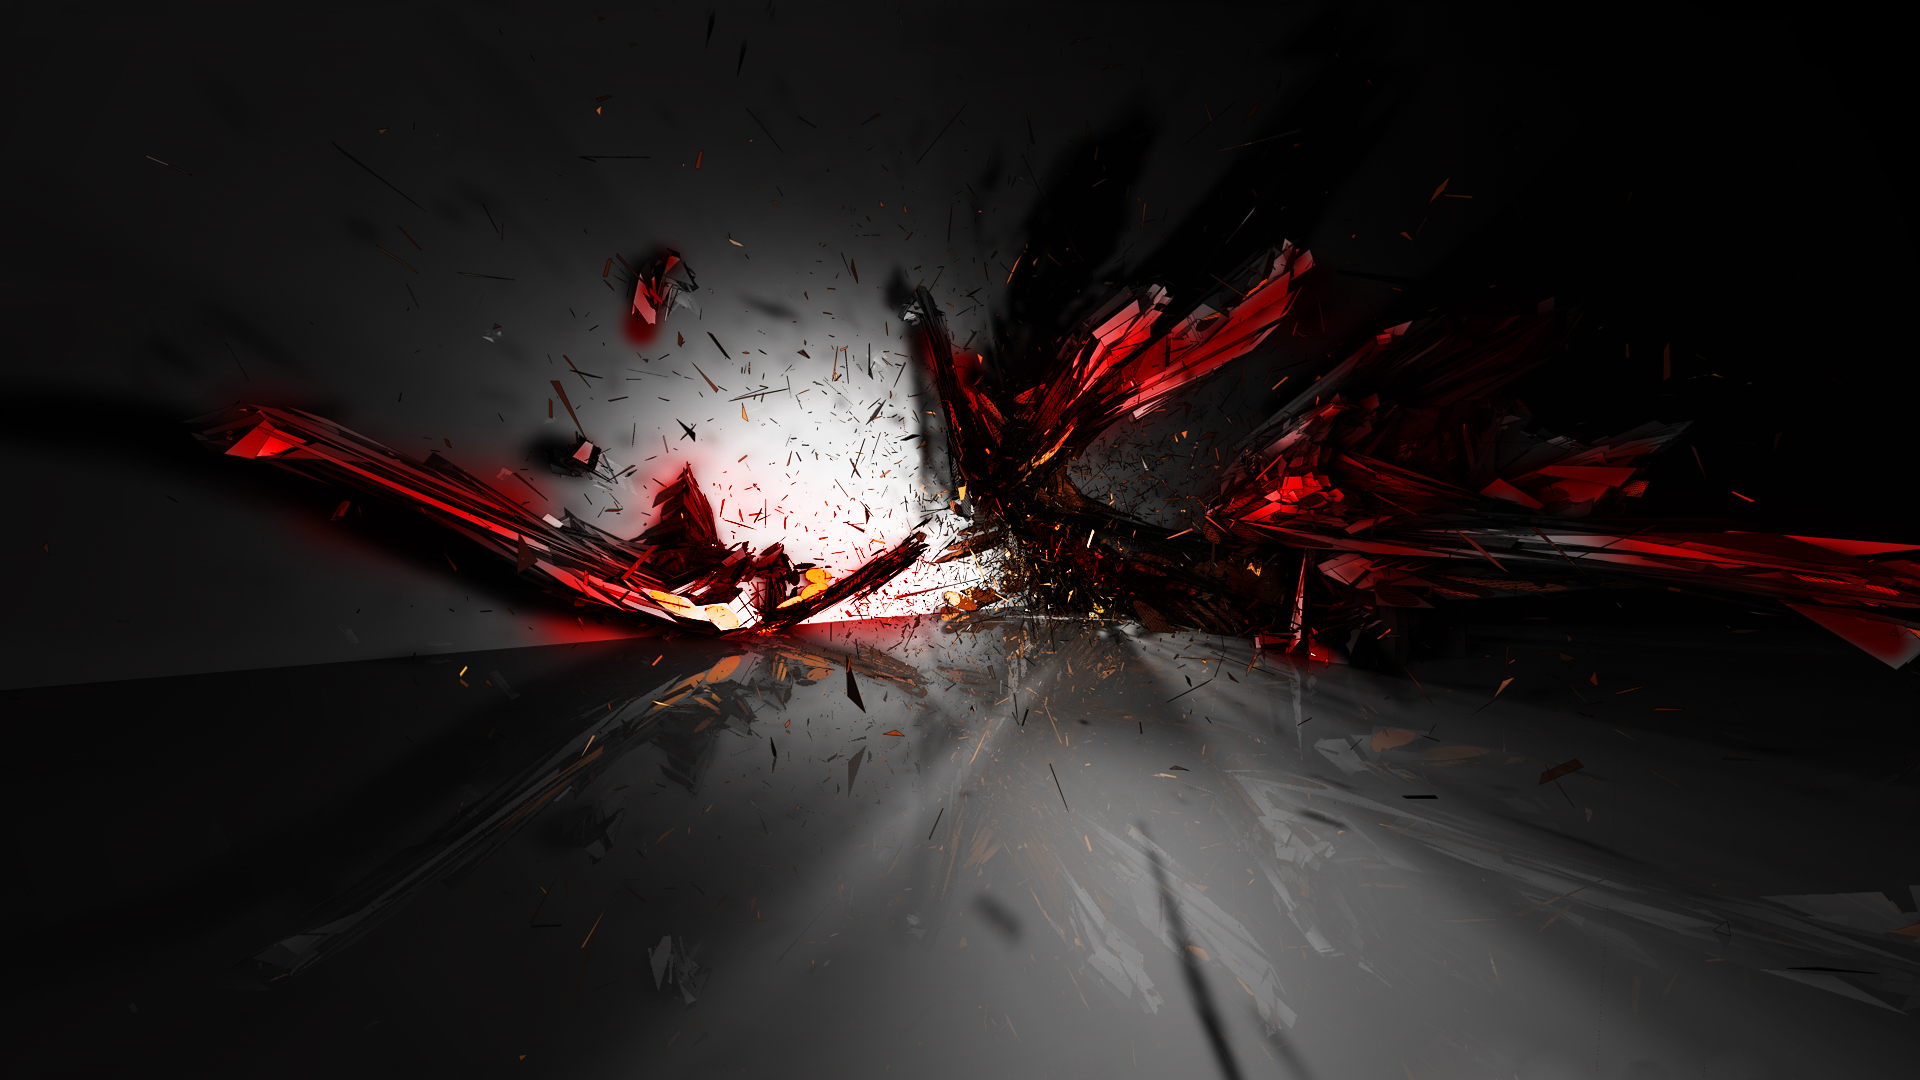 Hd red abstract wallpapers wallpapersafari for Wallpaper sources